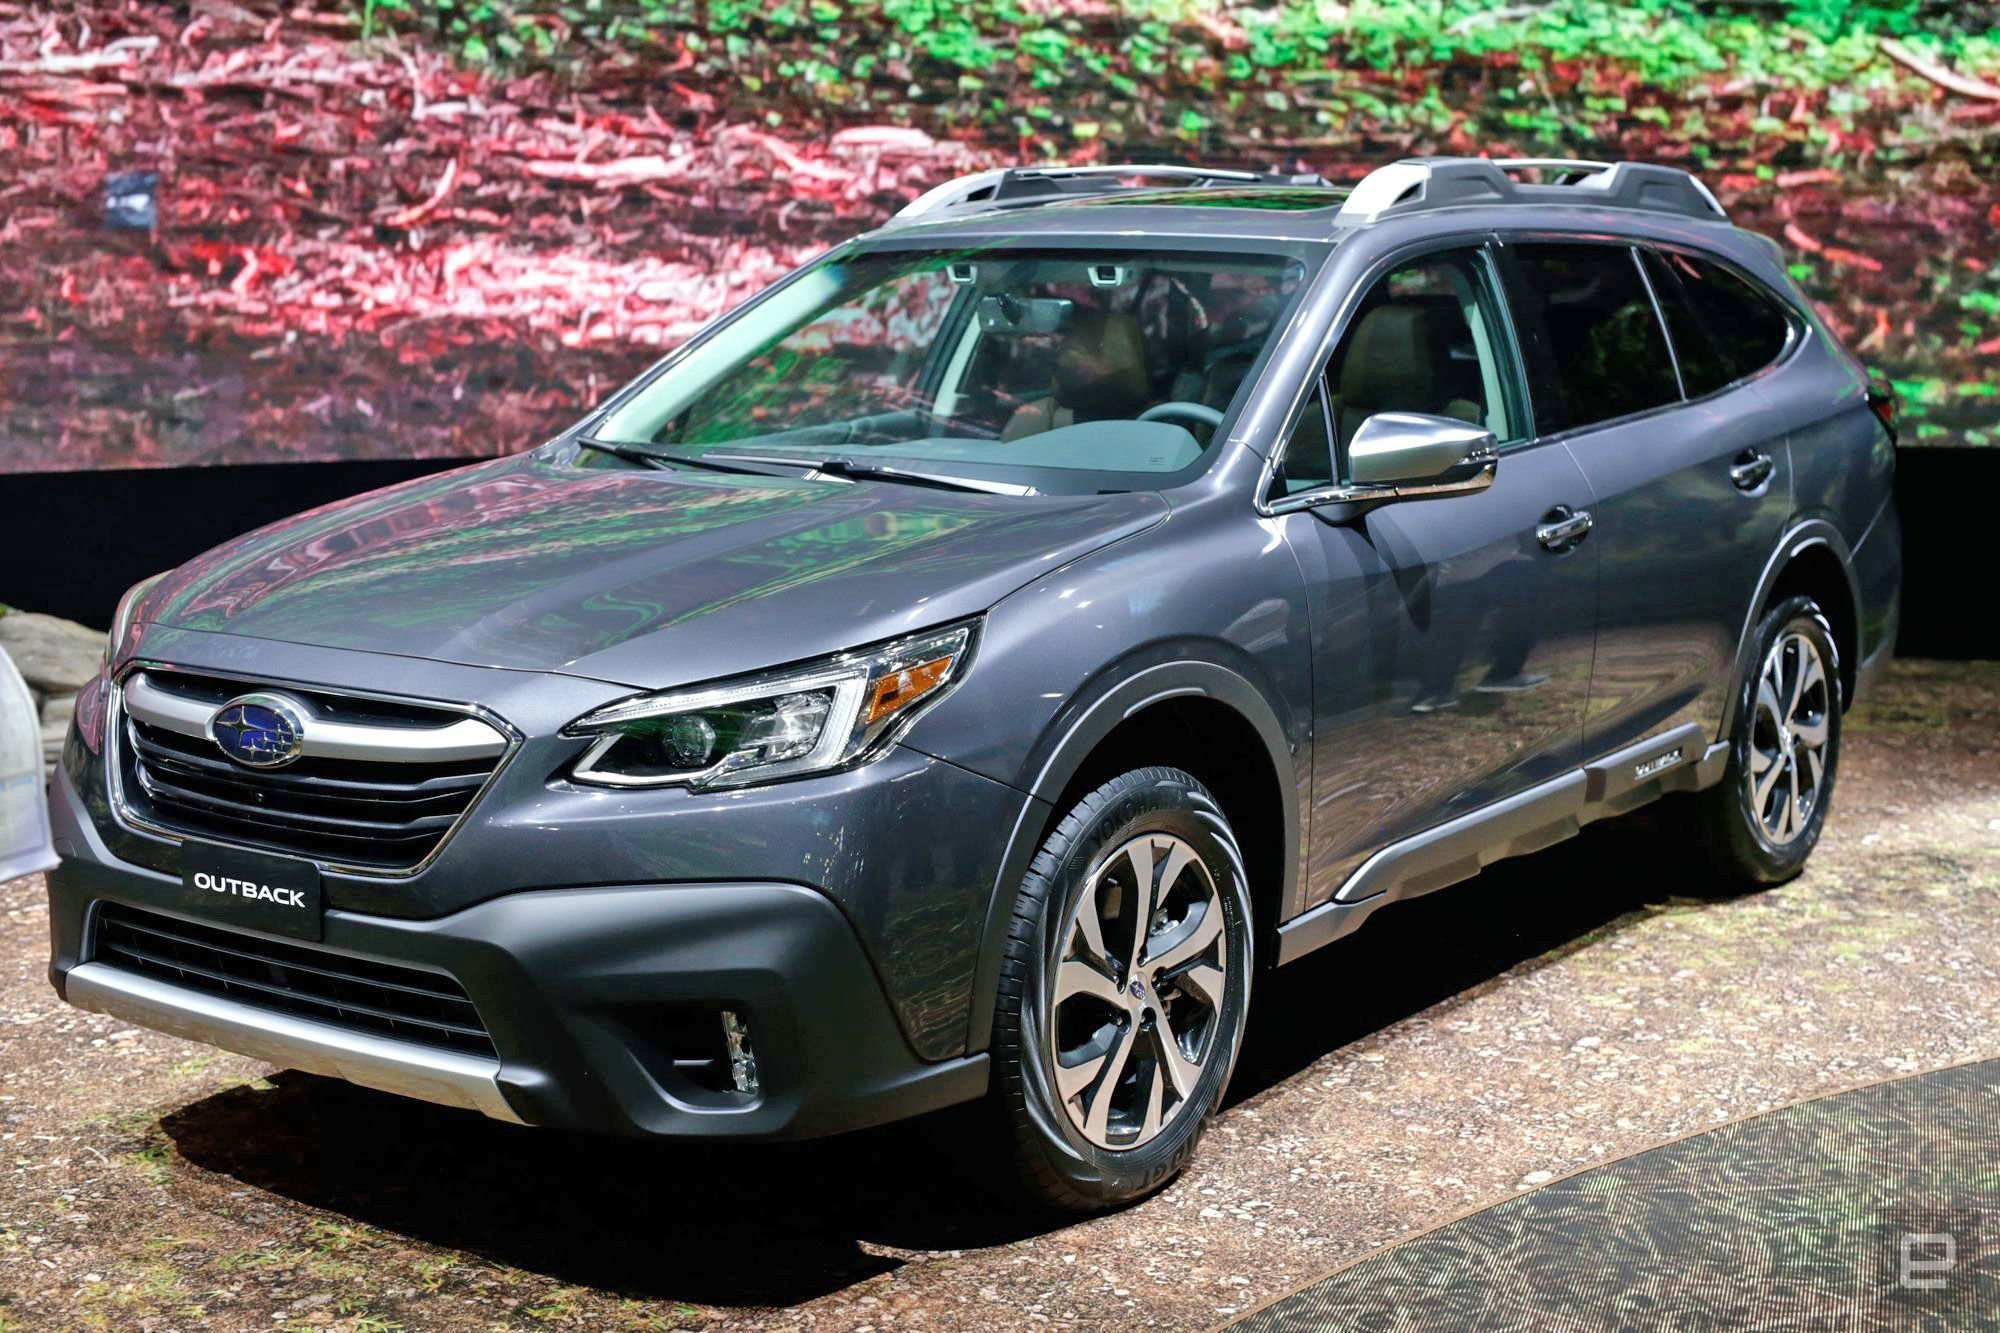 83 All New 2020 Subaru Outback Prices